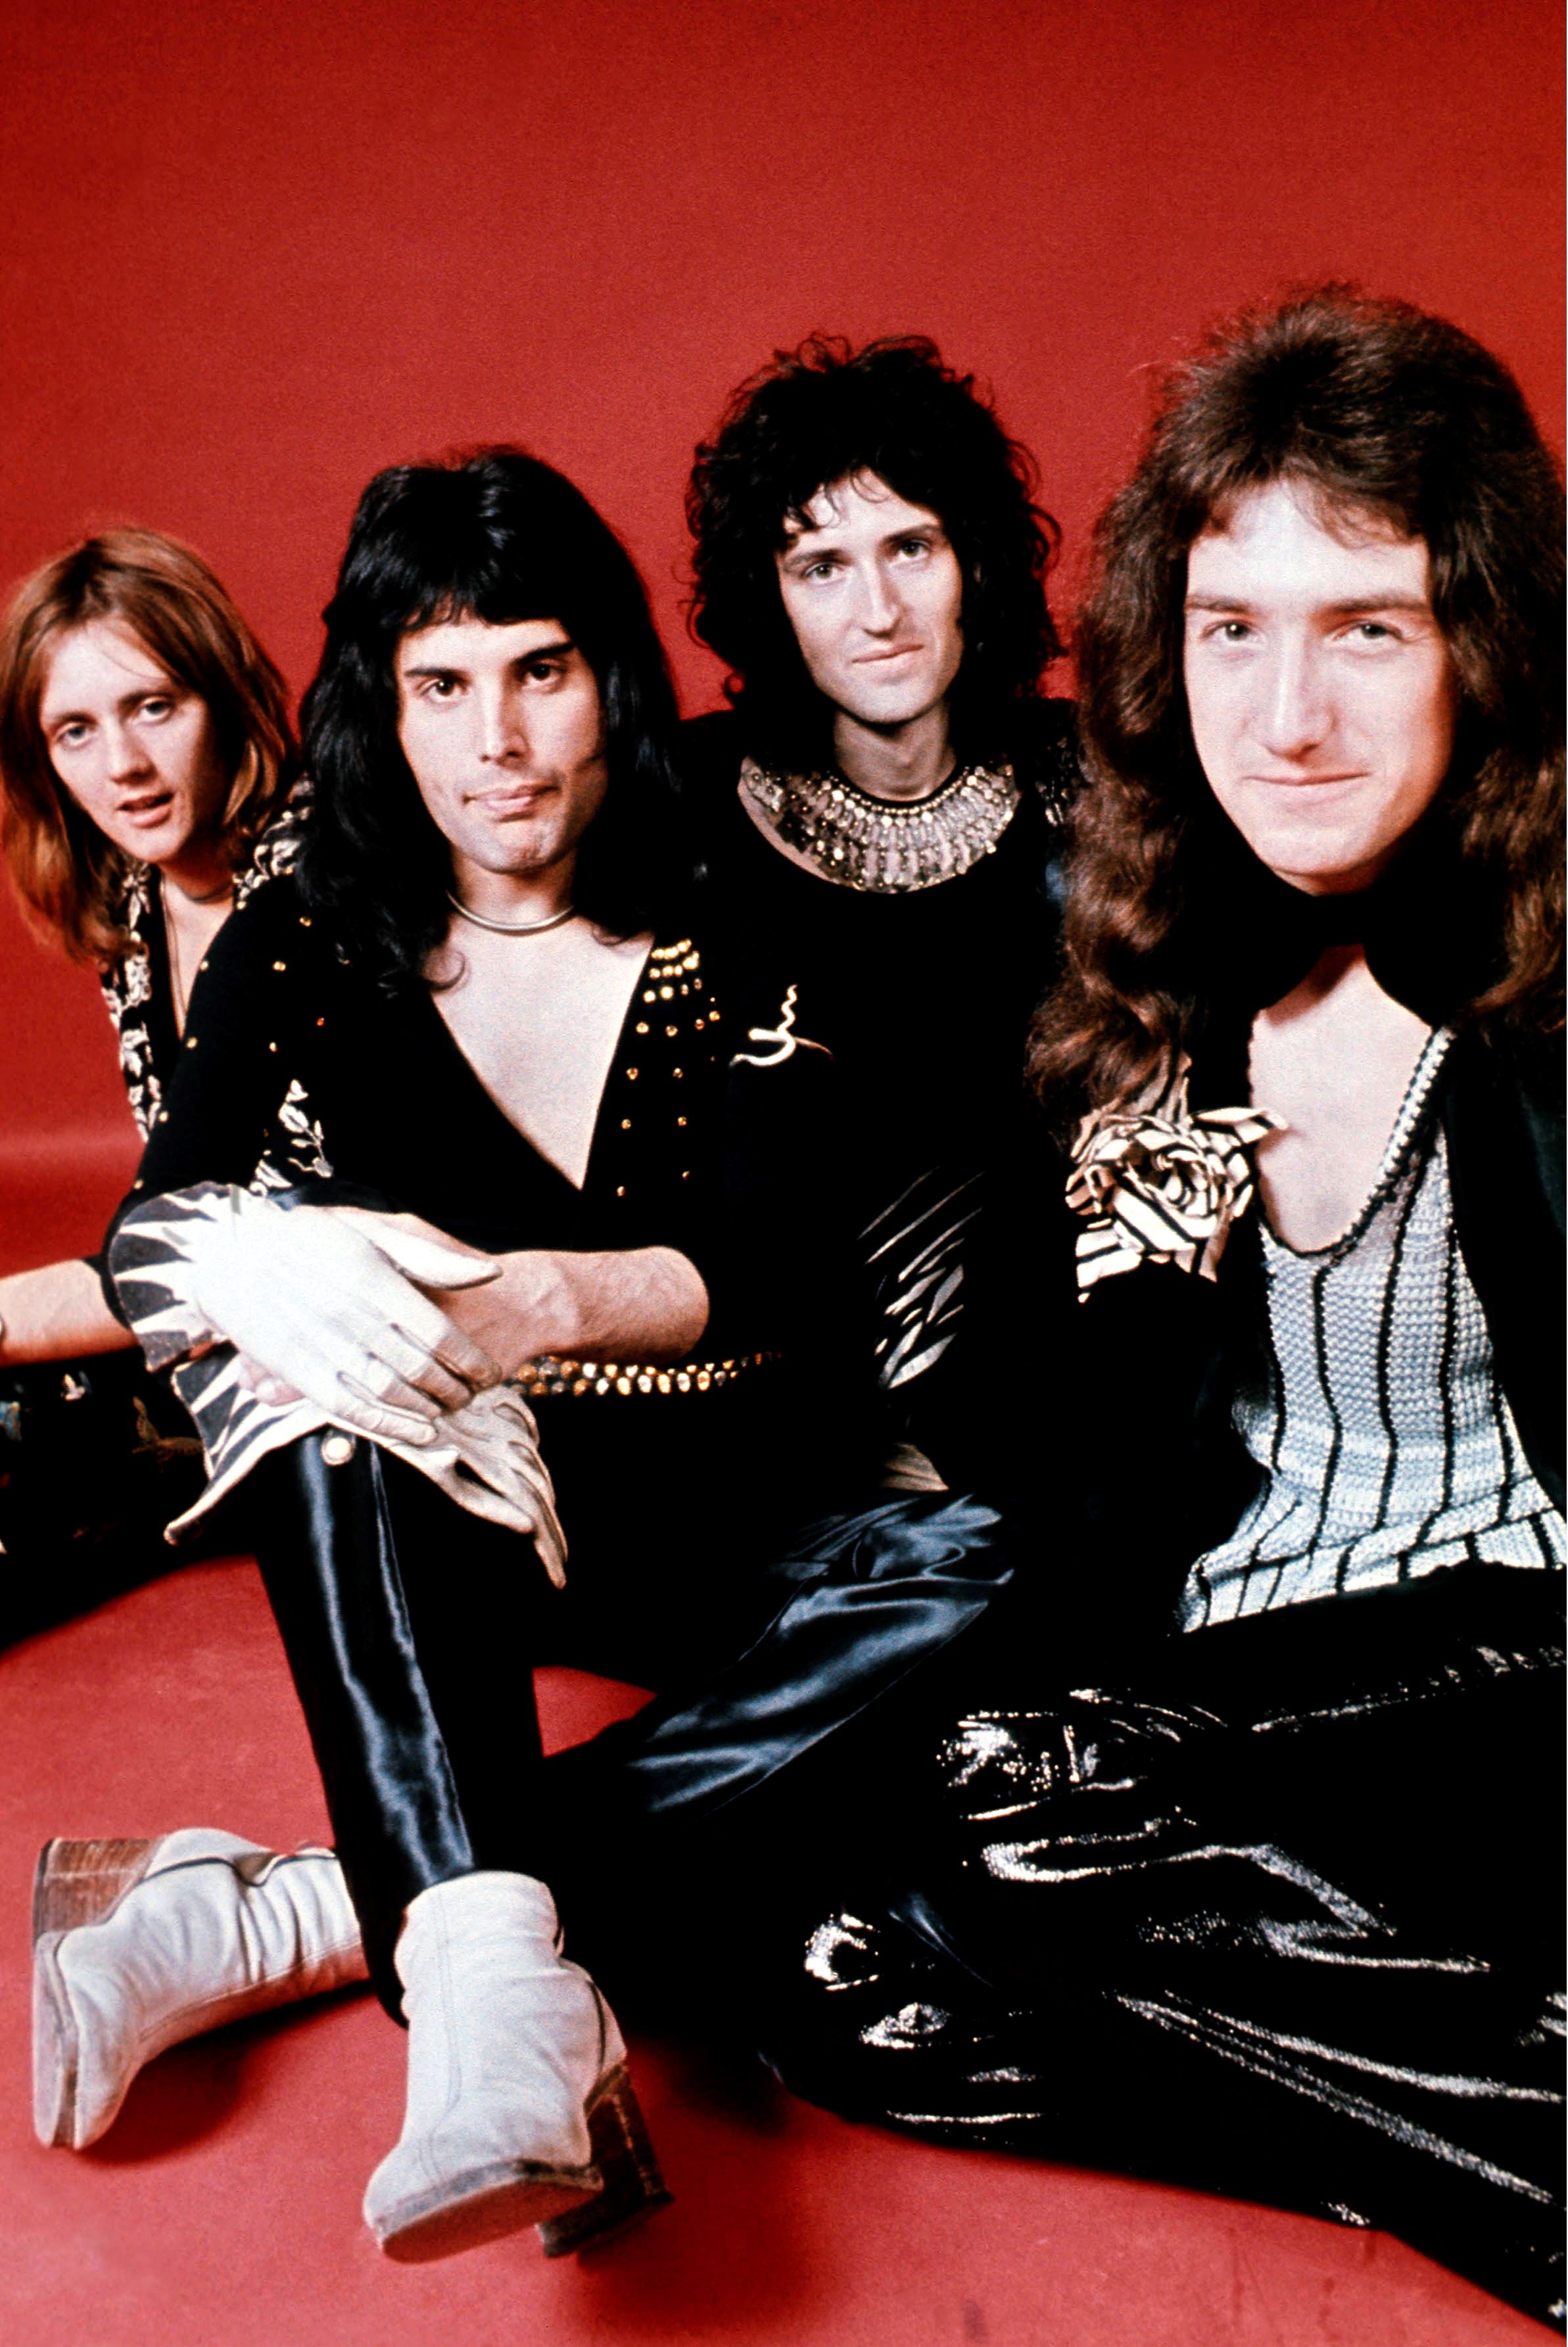 The Most Rare Stylish Photos Of Queen And Freddie Mercury Bohemian